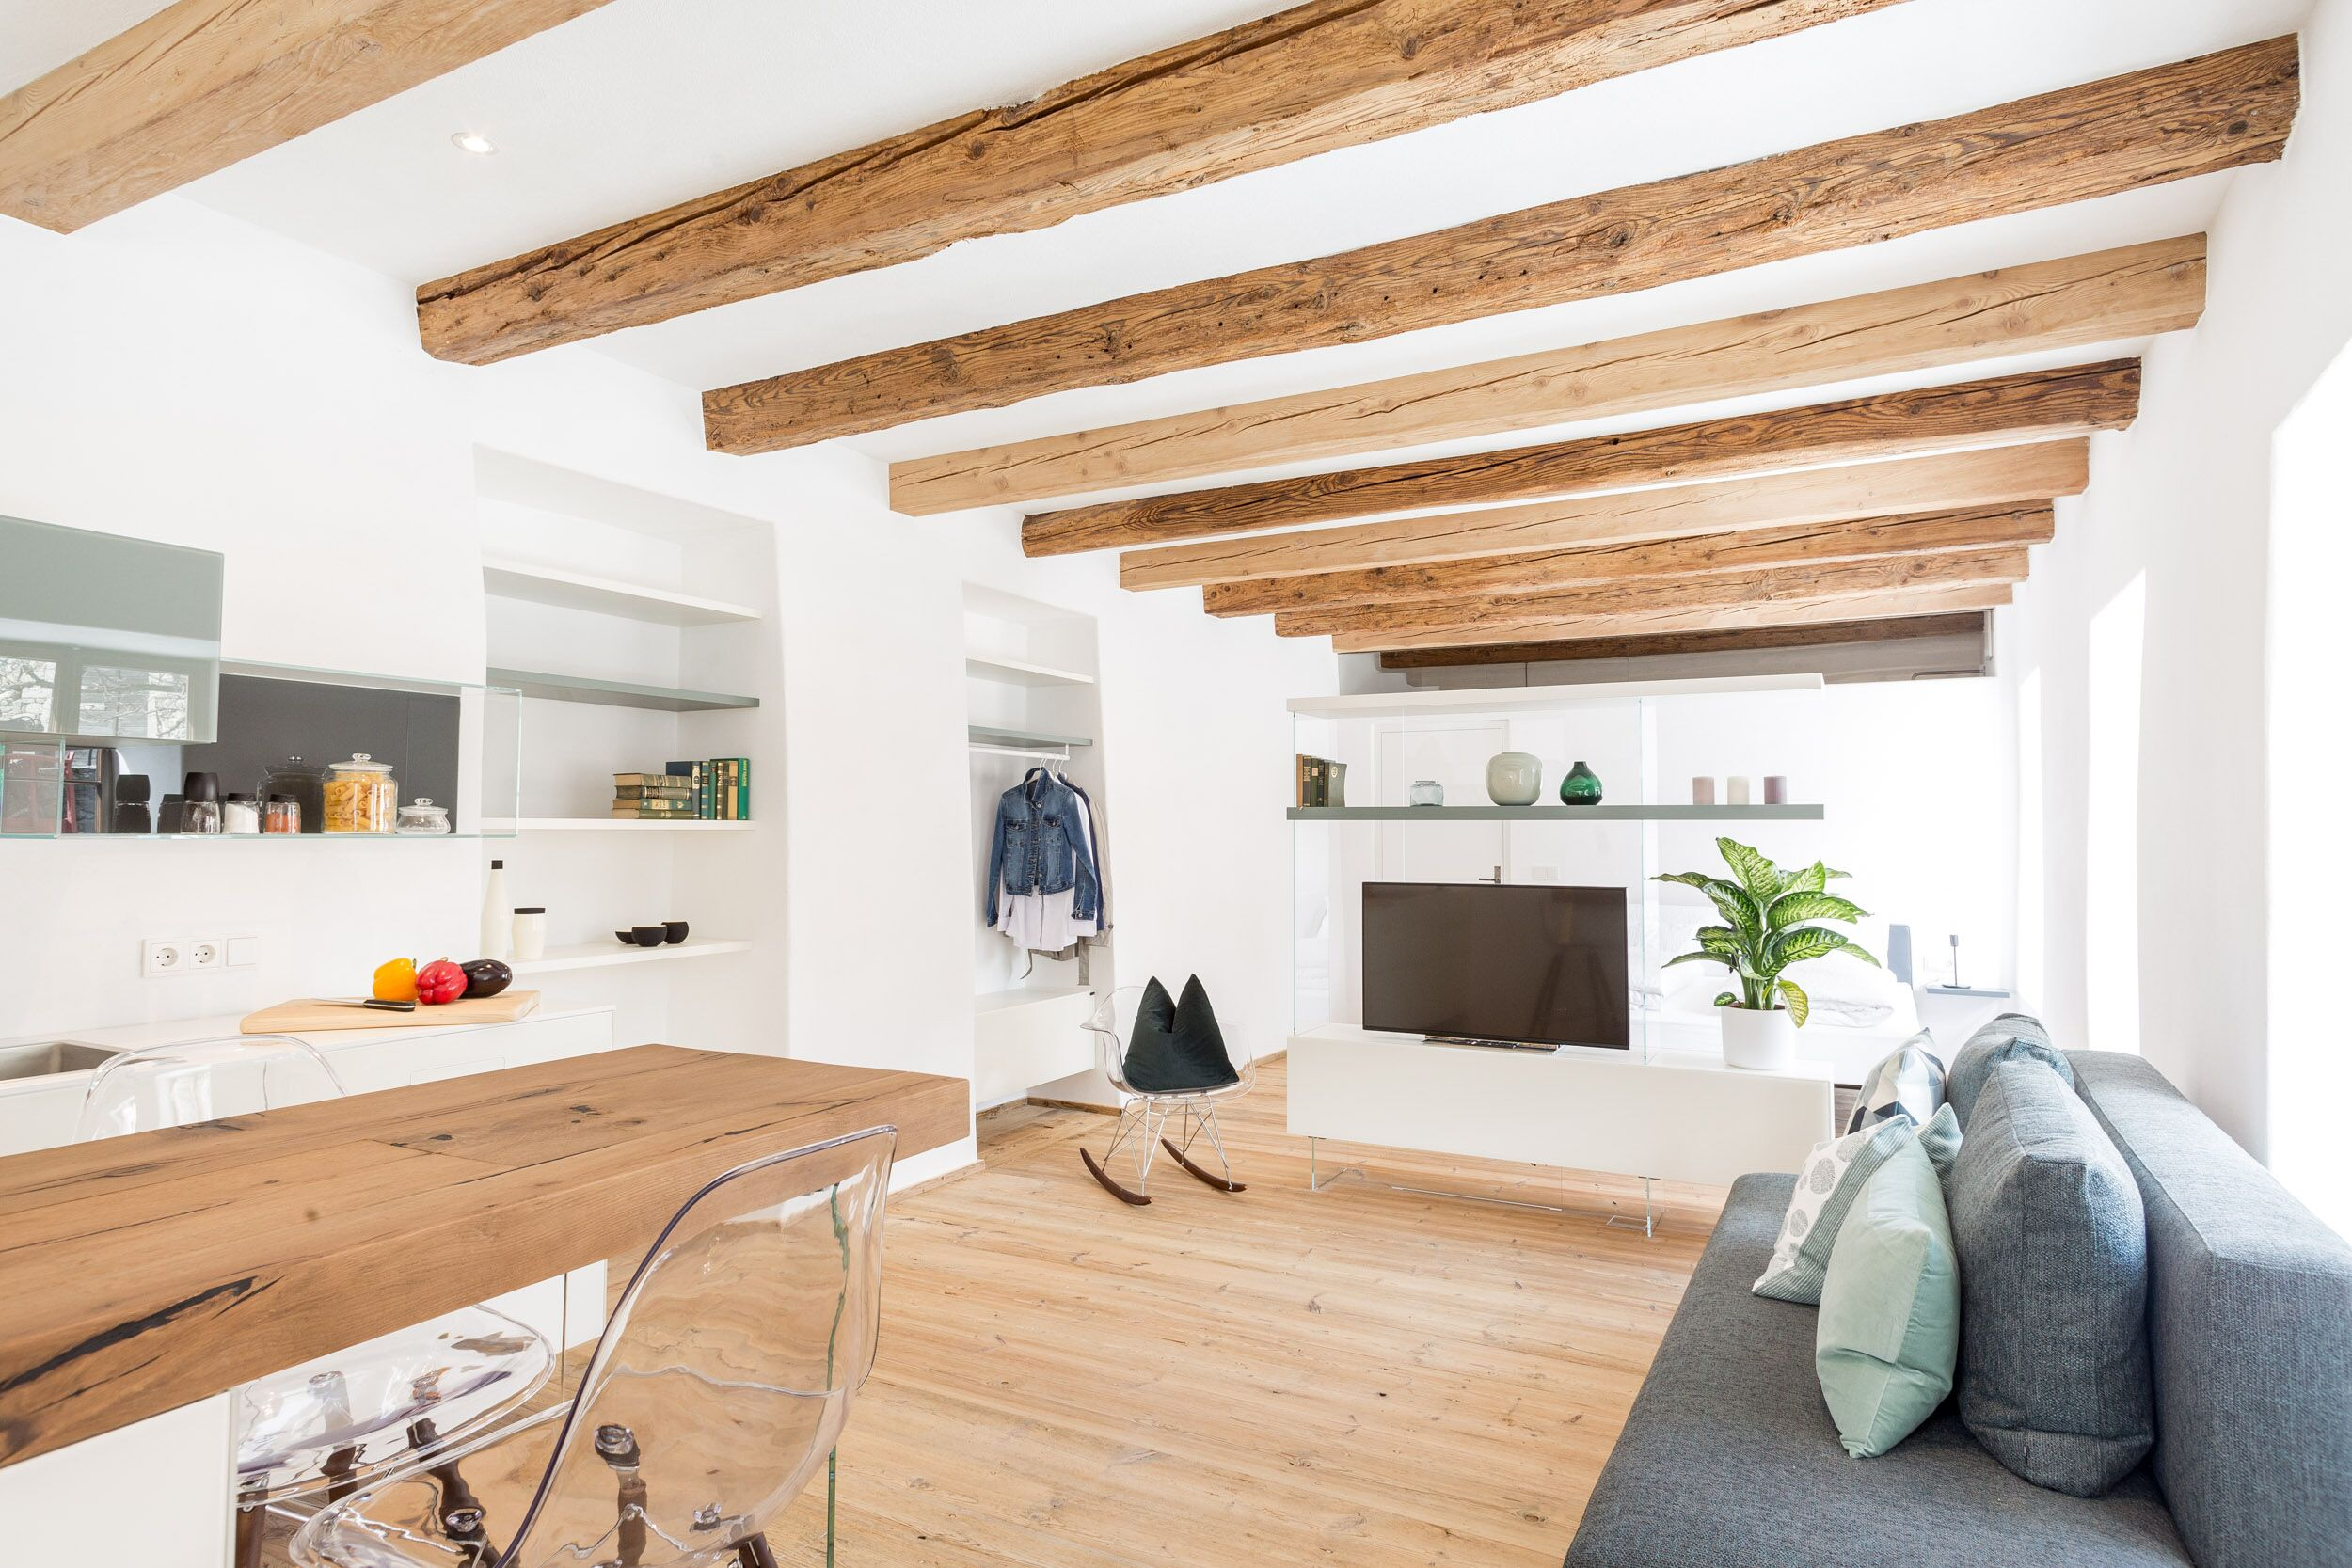 Apartment 2 - Stylish and bright open-space studio design apartment with antique wooden floors and ceiling beams.